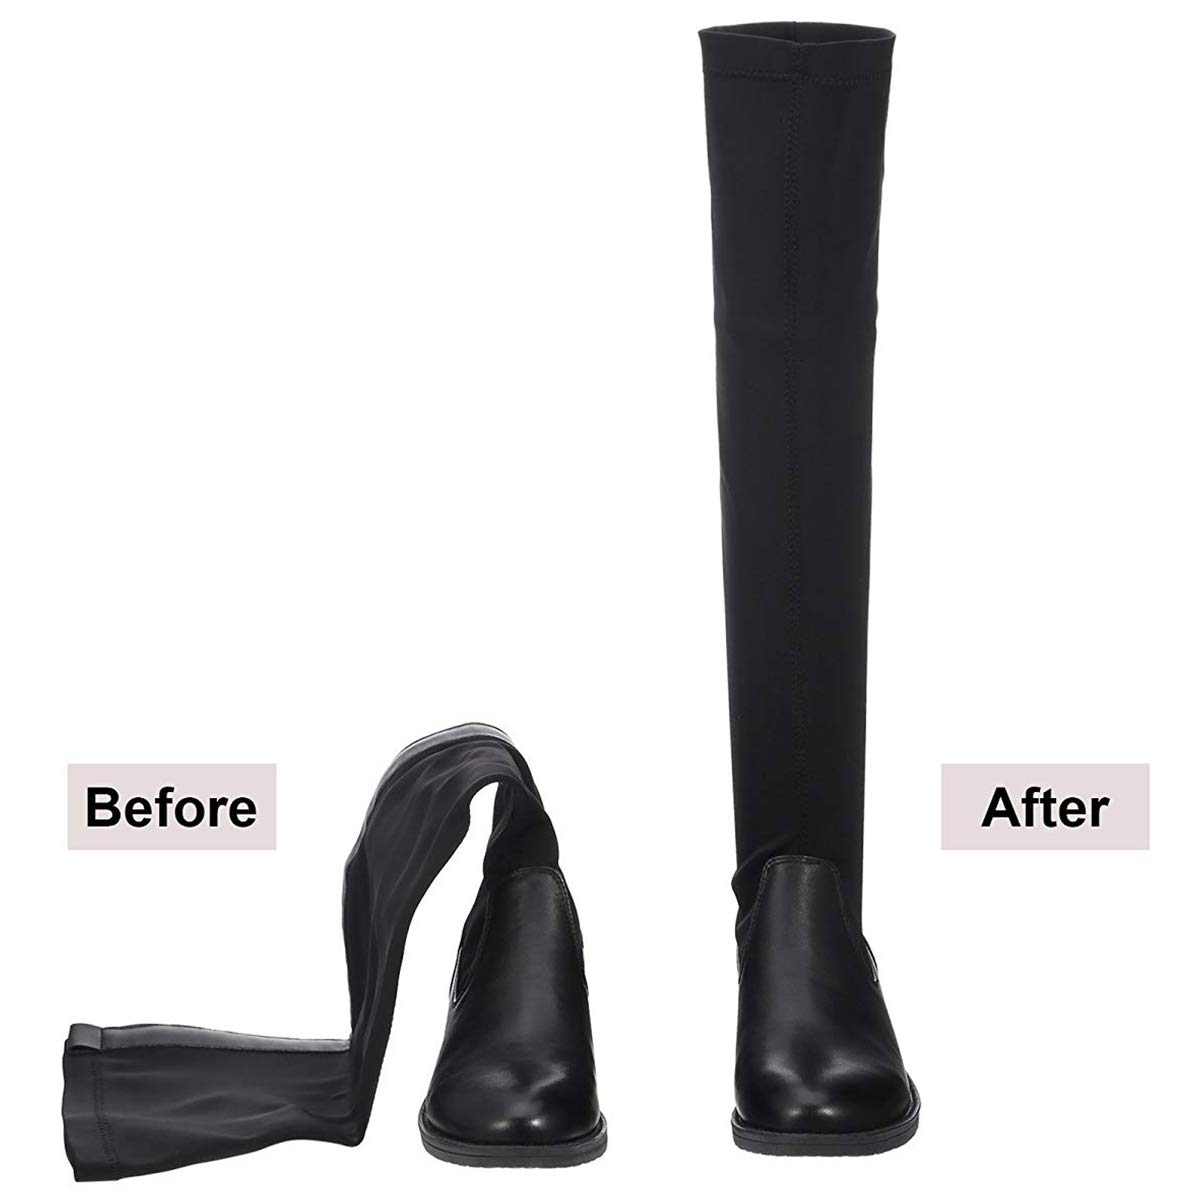 8 Pieces For 4 Pairs Of Boots TOOGOO Boot Shaper Form Inserts Tall Boot Support For Women And Men 12 Inch, 14 Inch And 16 Inch, Black